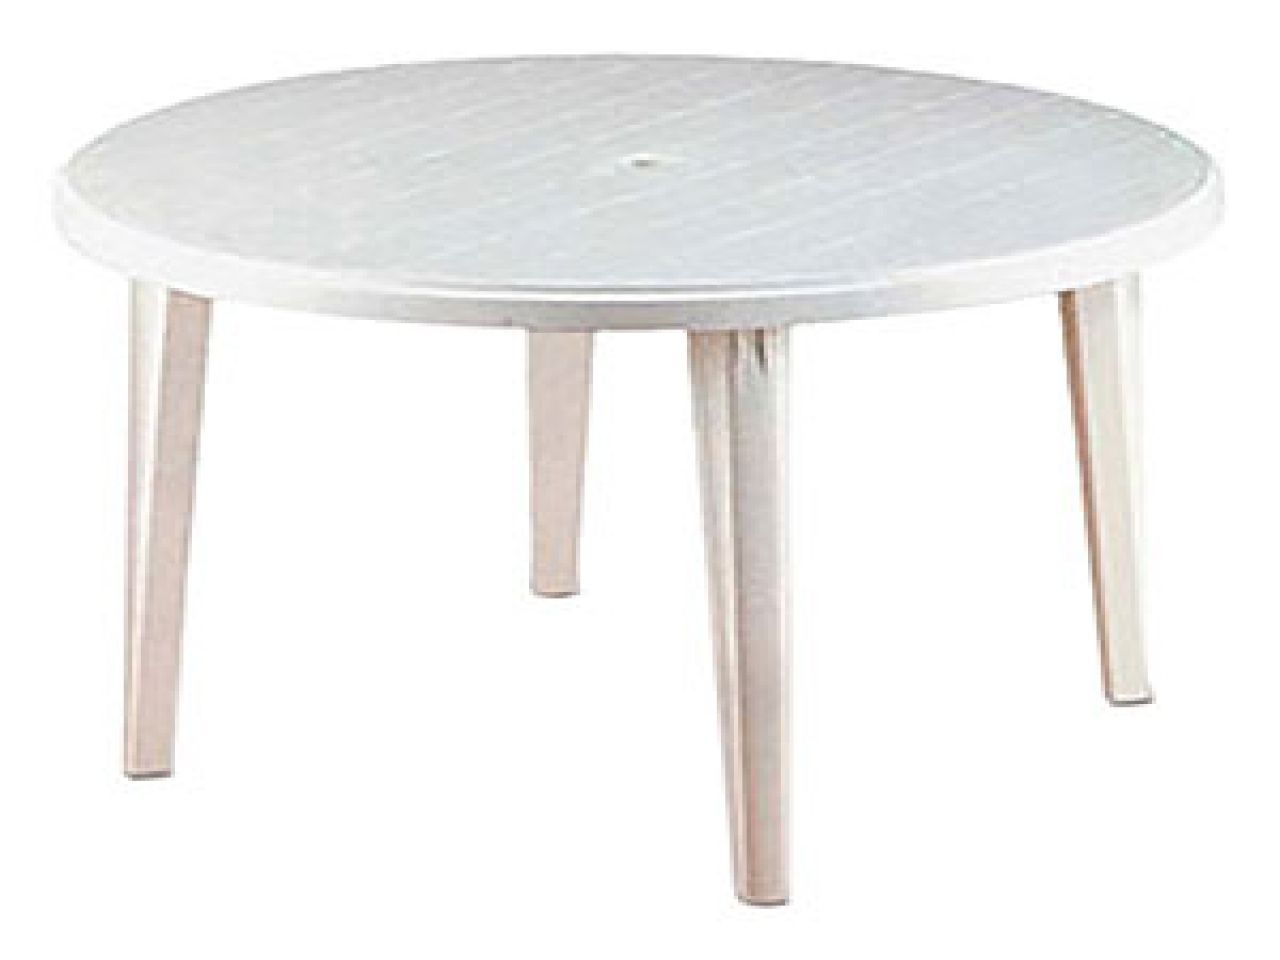 50 Plastic Round Tables Modern Italian Furniture Check More At